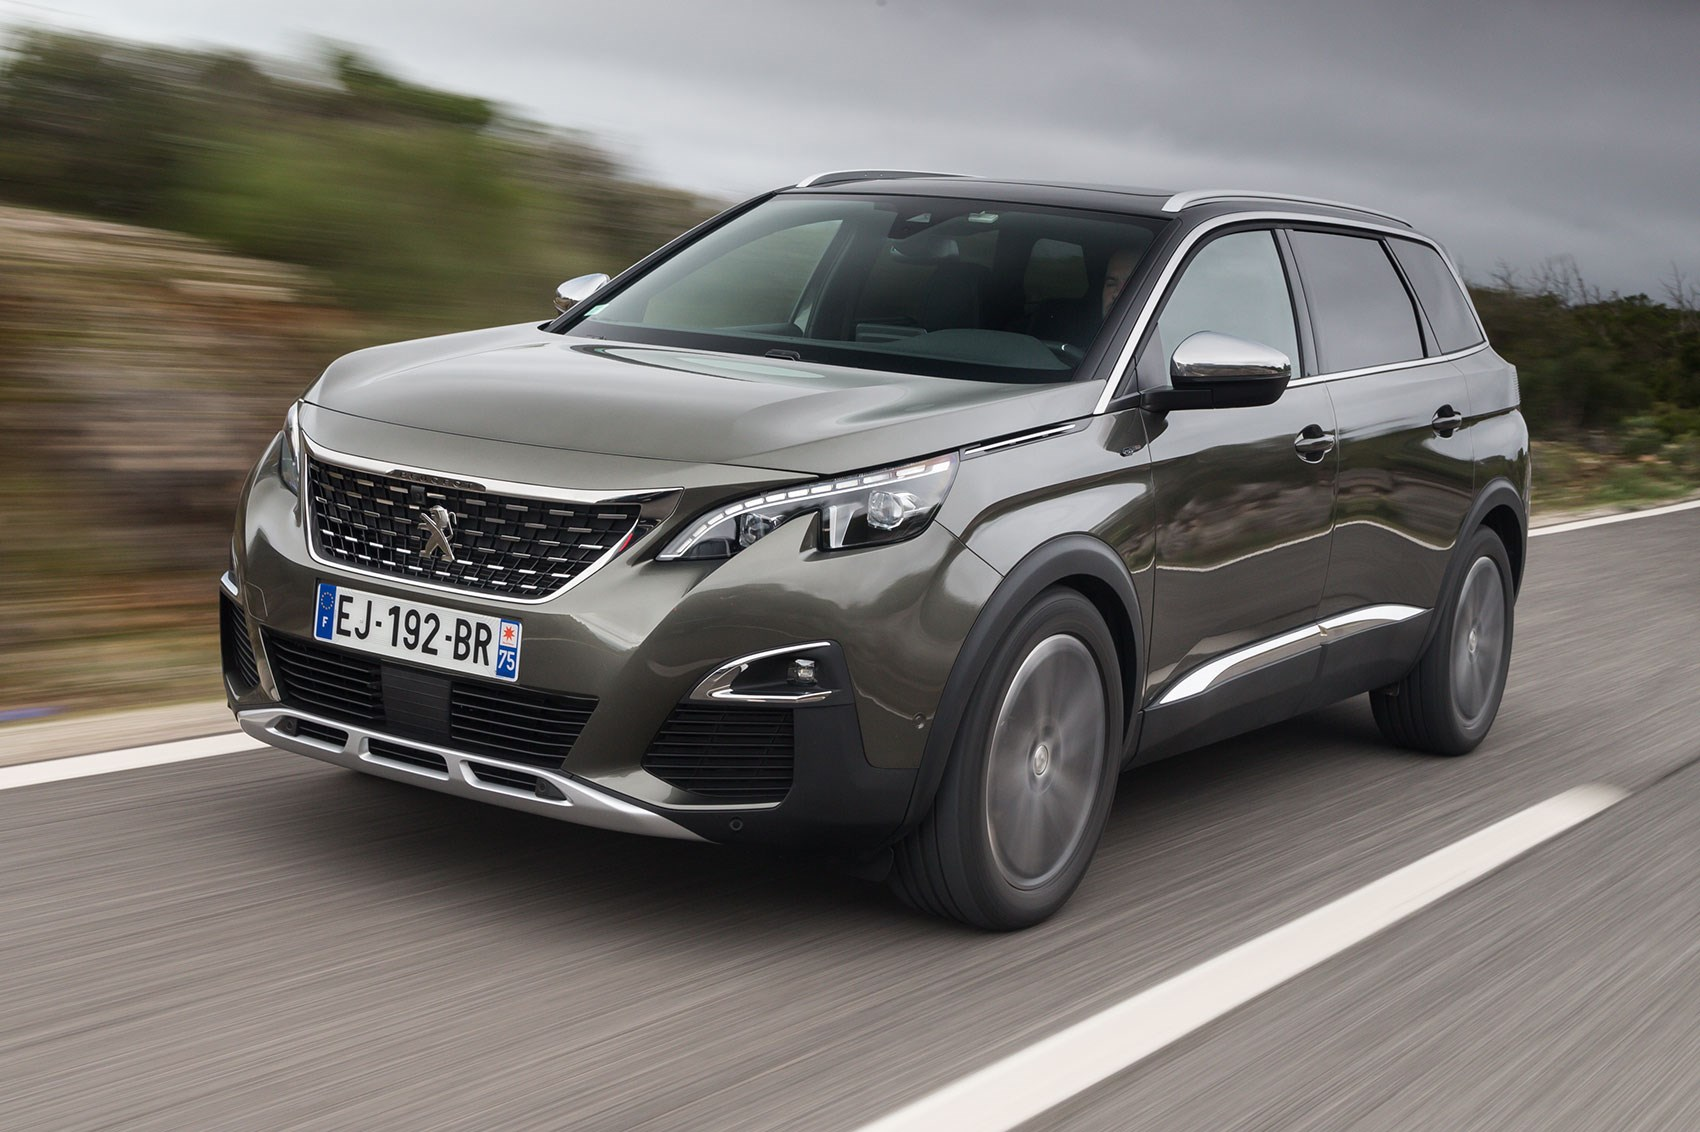 peugeot 5008 (2018) review: gallic flair in suv-form | car magazine